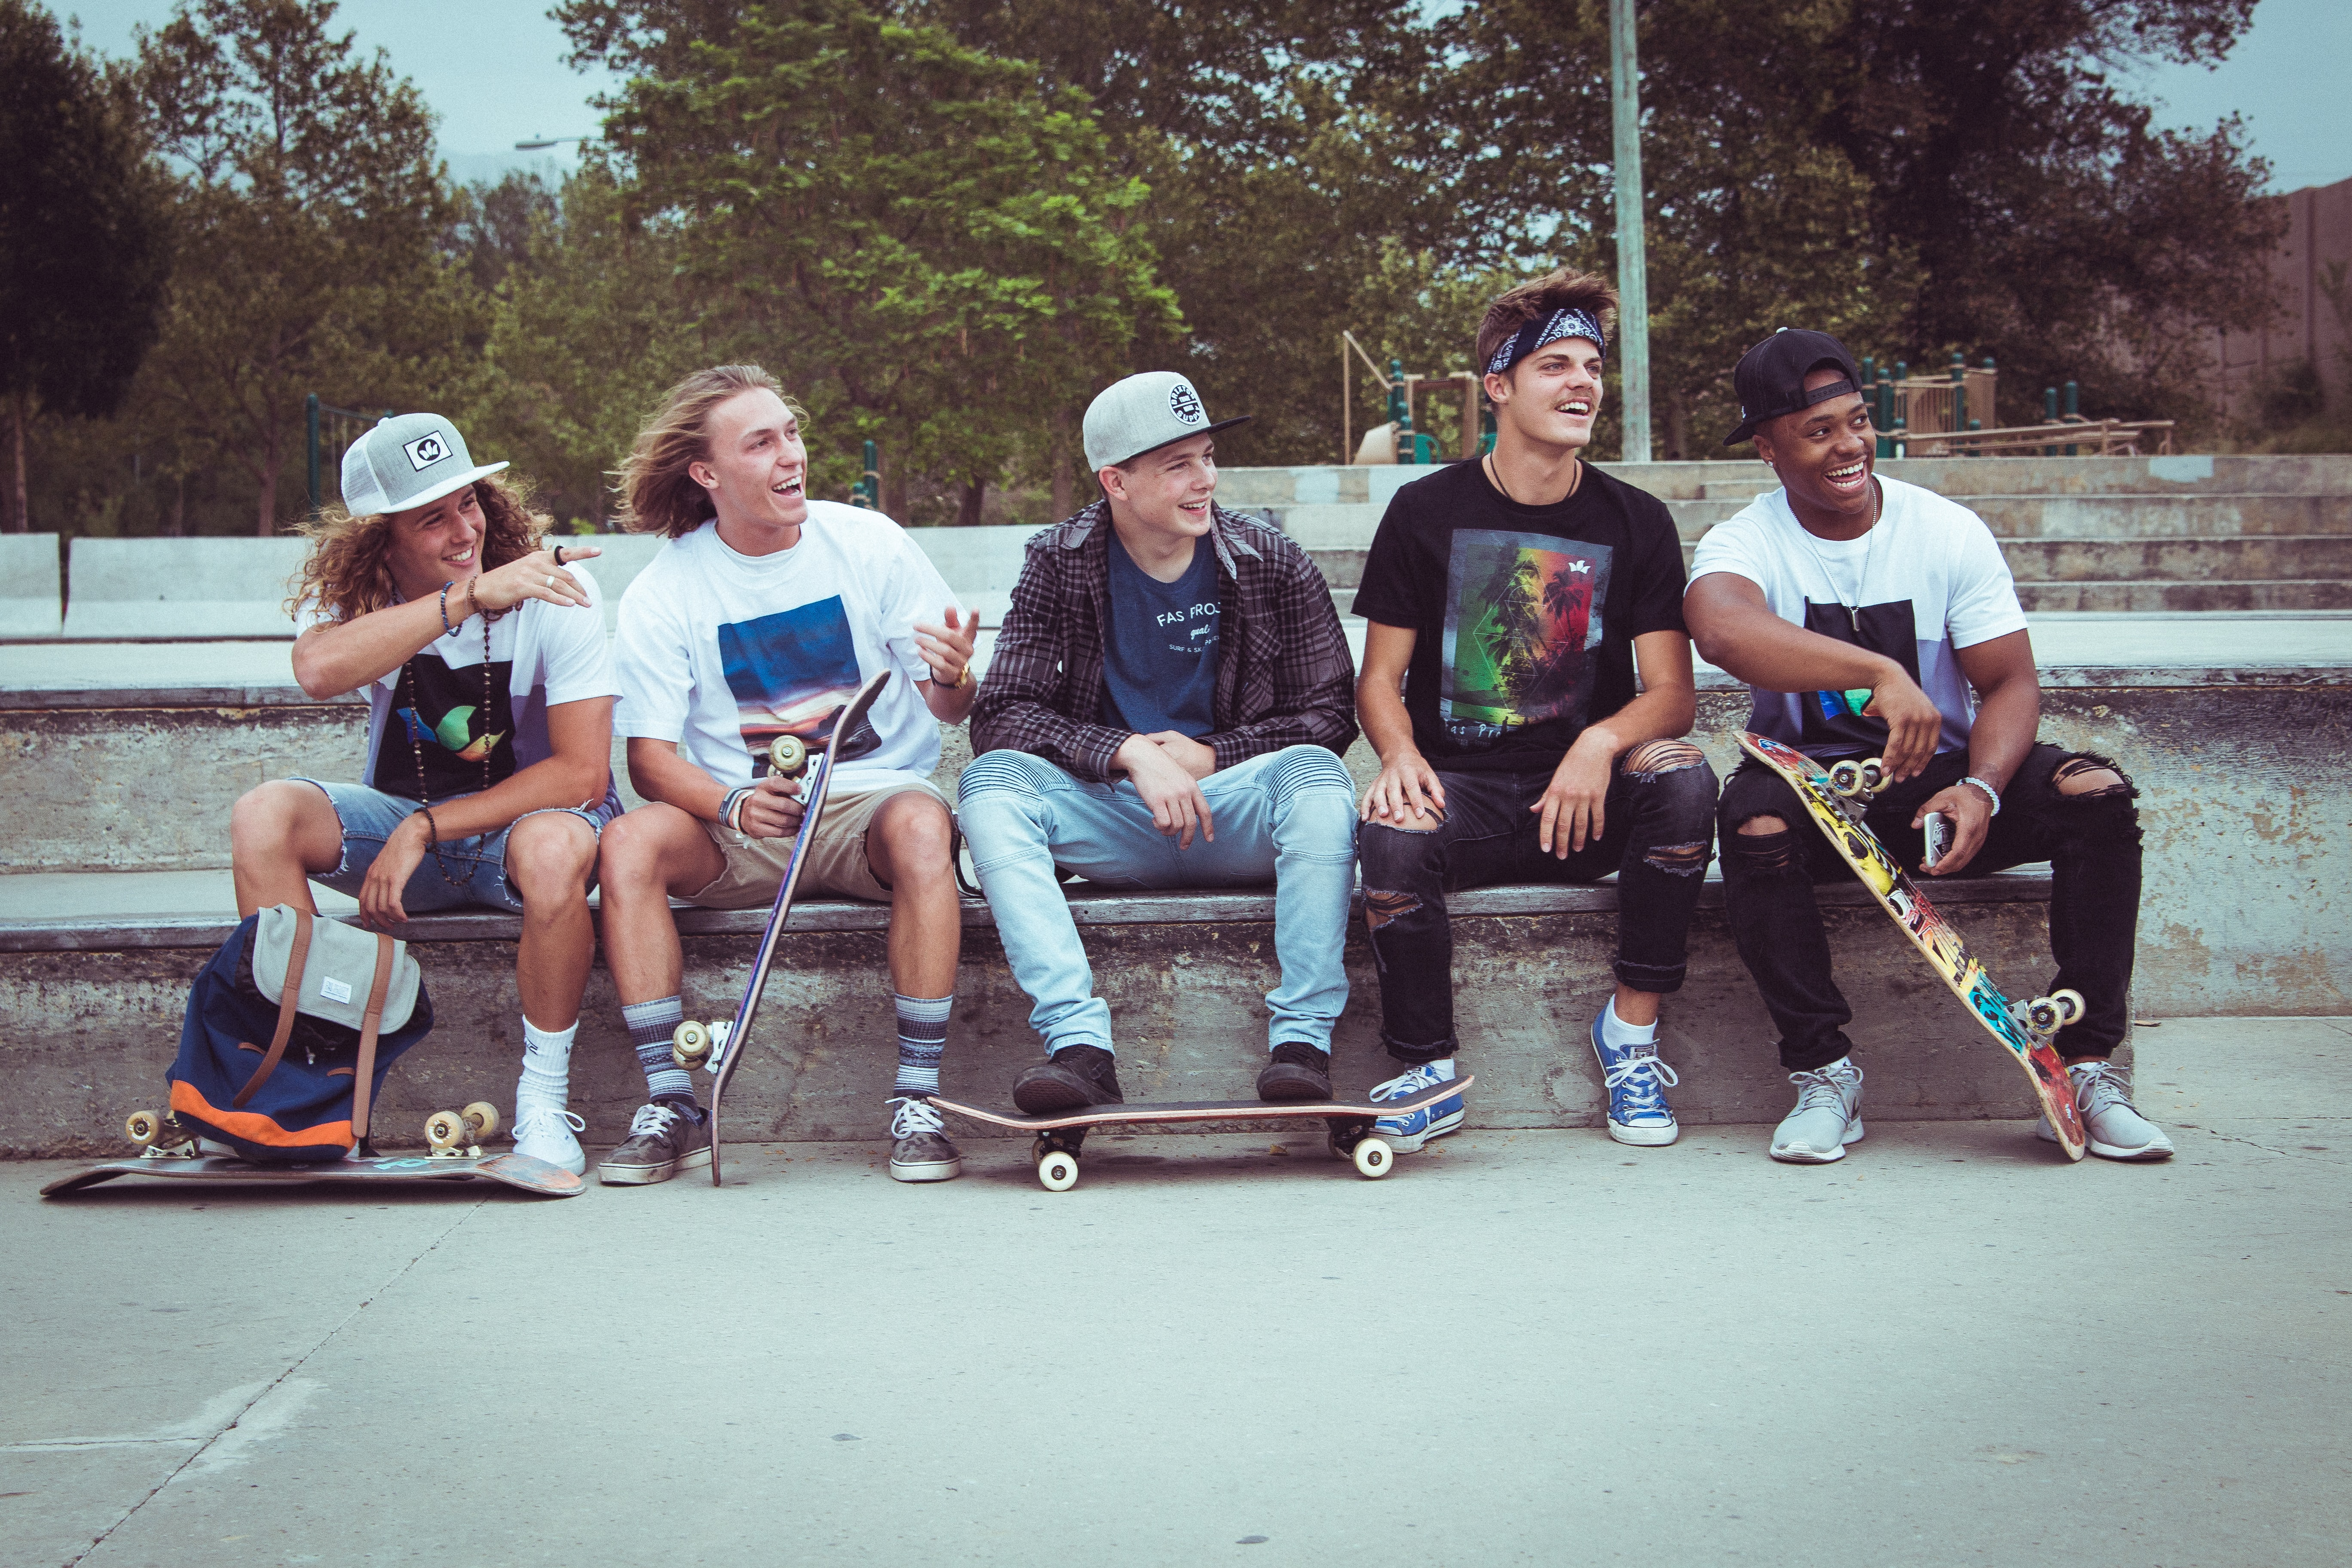 five group of men sitting together with their skateboards